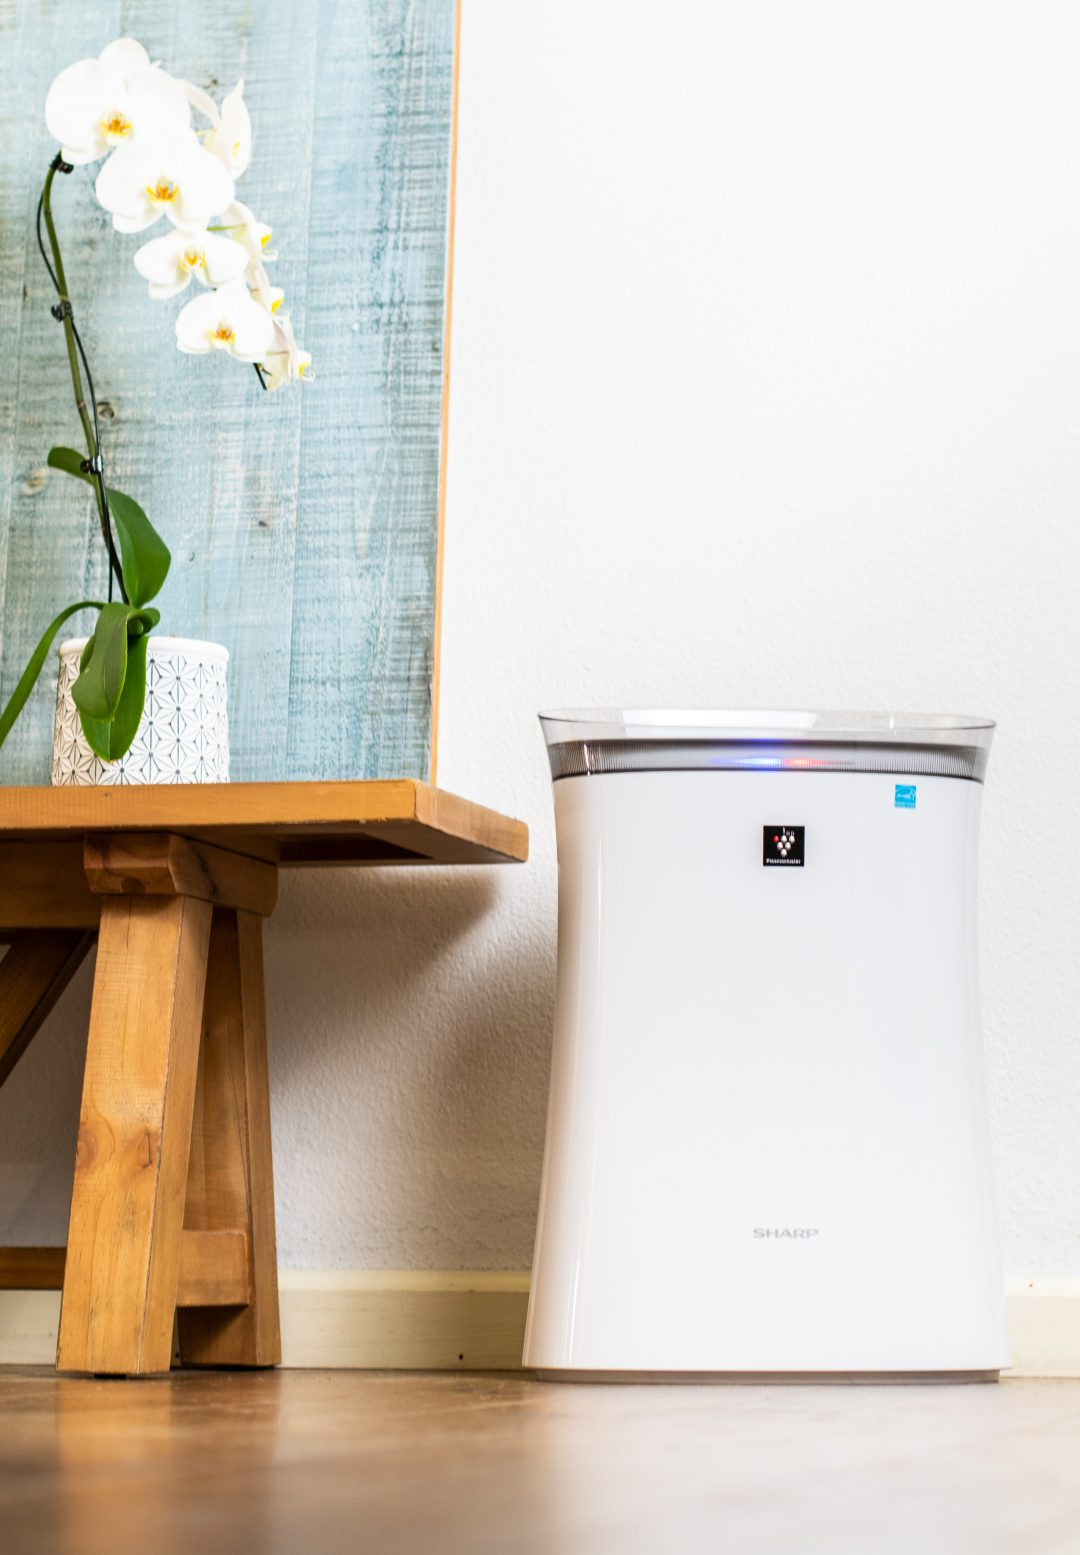 Sharp air purifier next to table